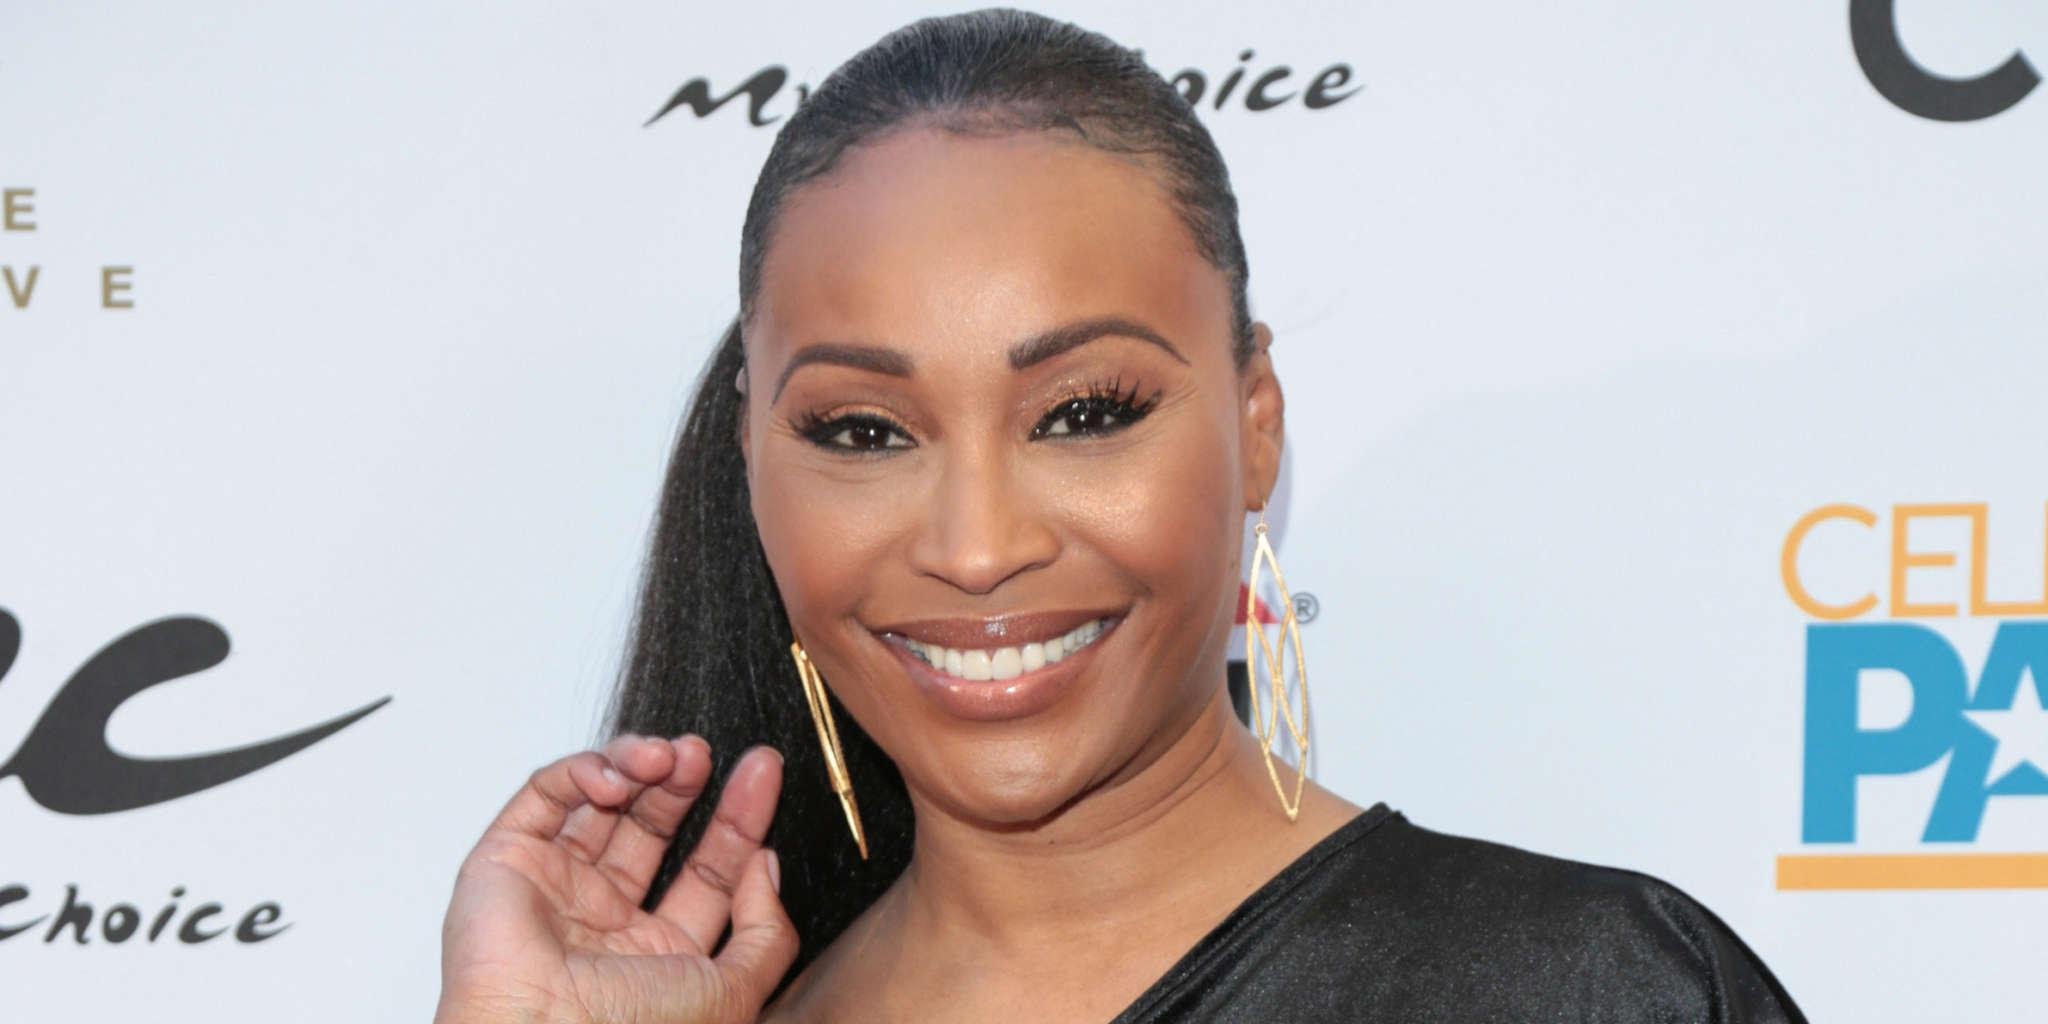 Cynthia Bailey Shares Pics With Her RHOA Personal Photographer - Find Out Why Fans Throw Shade